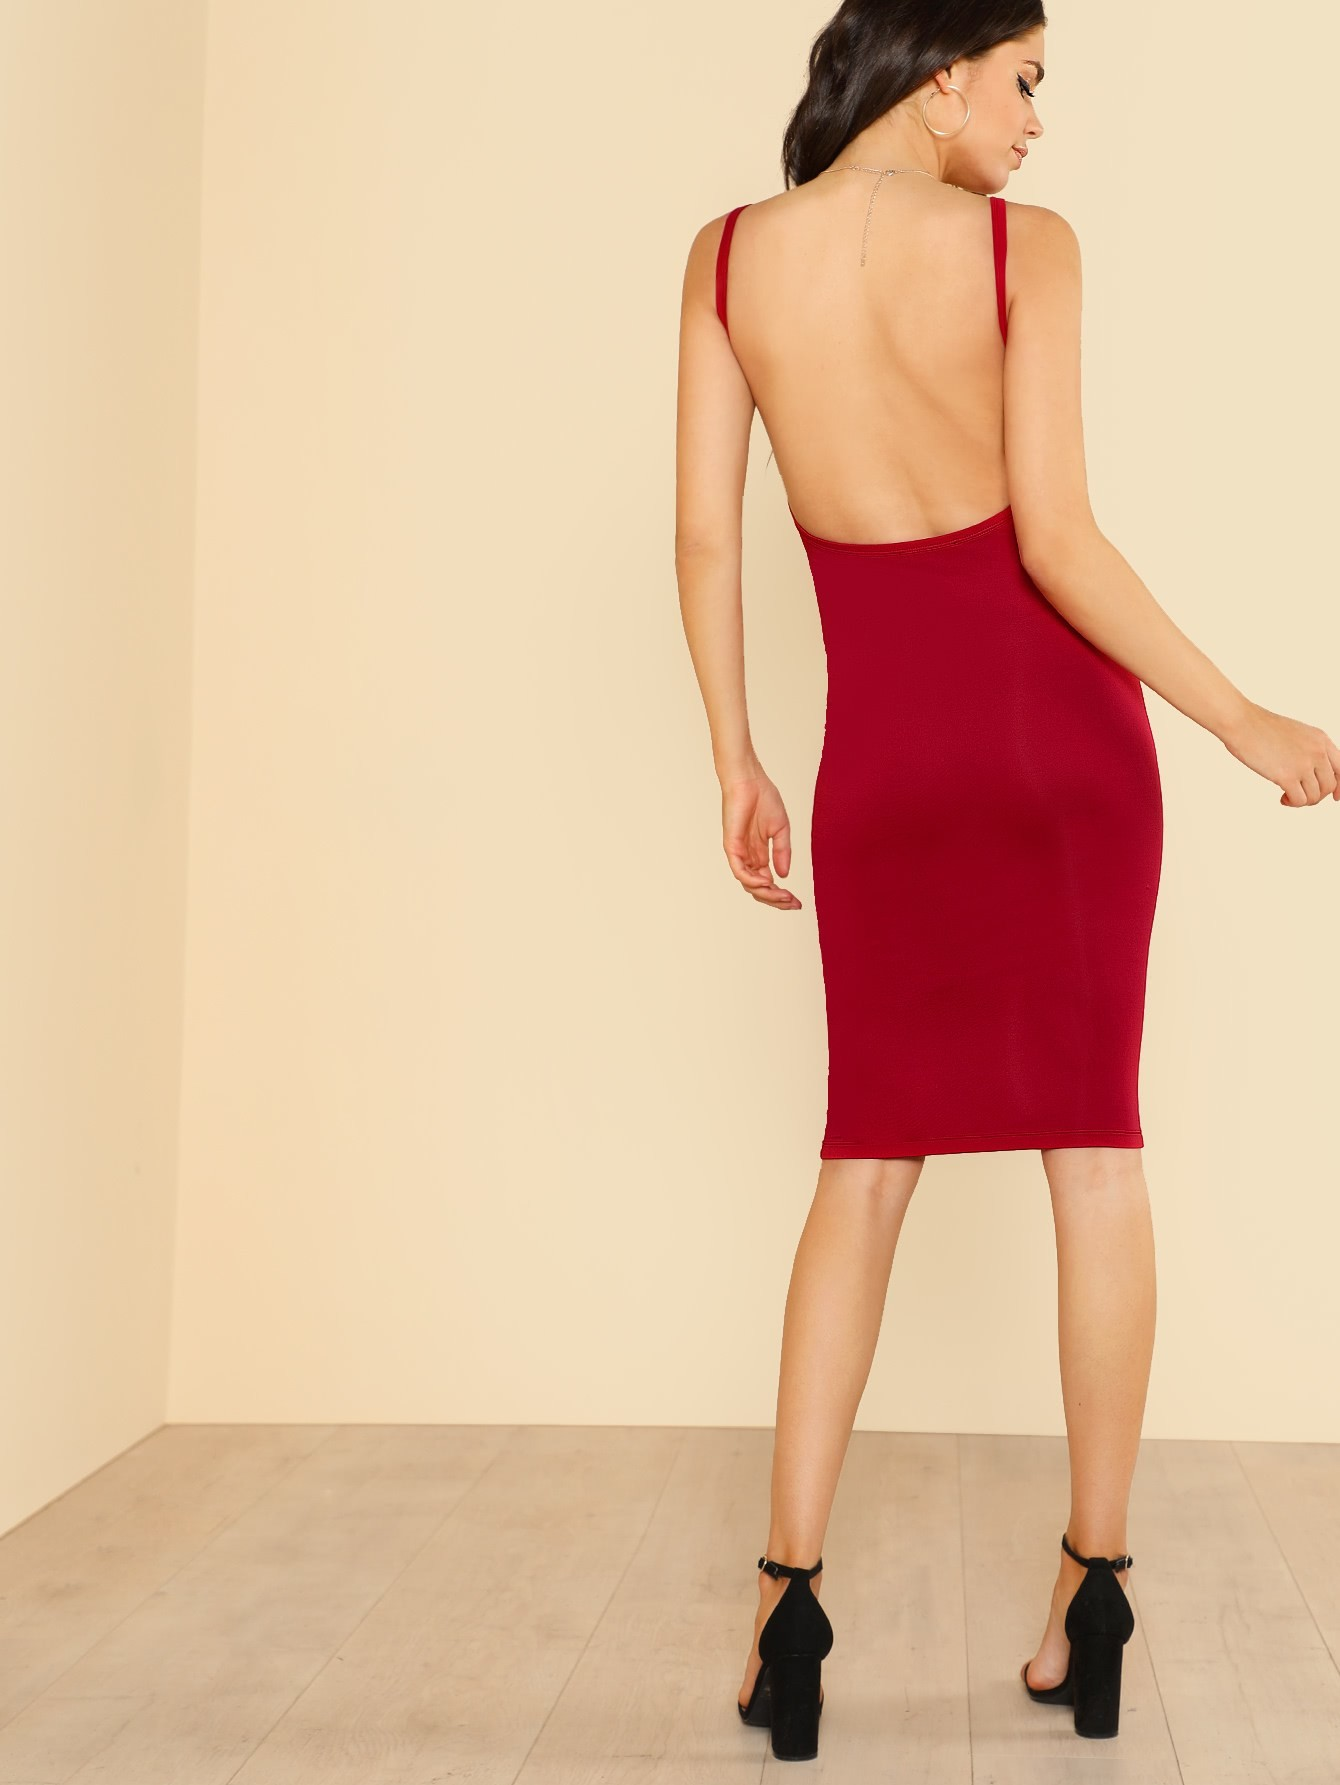 Low Back Form Fitted Dress 170